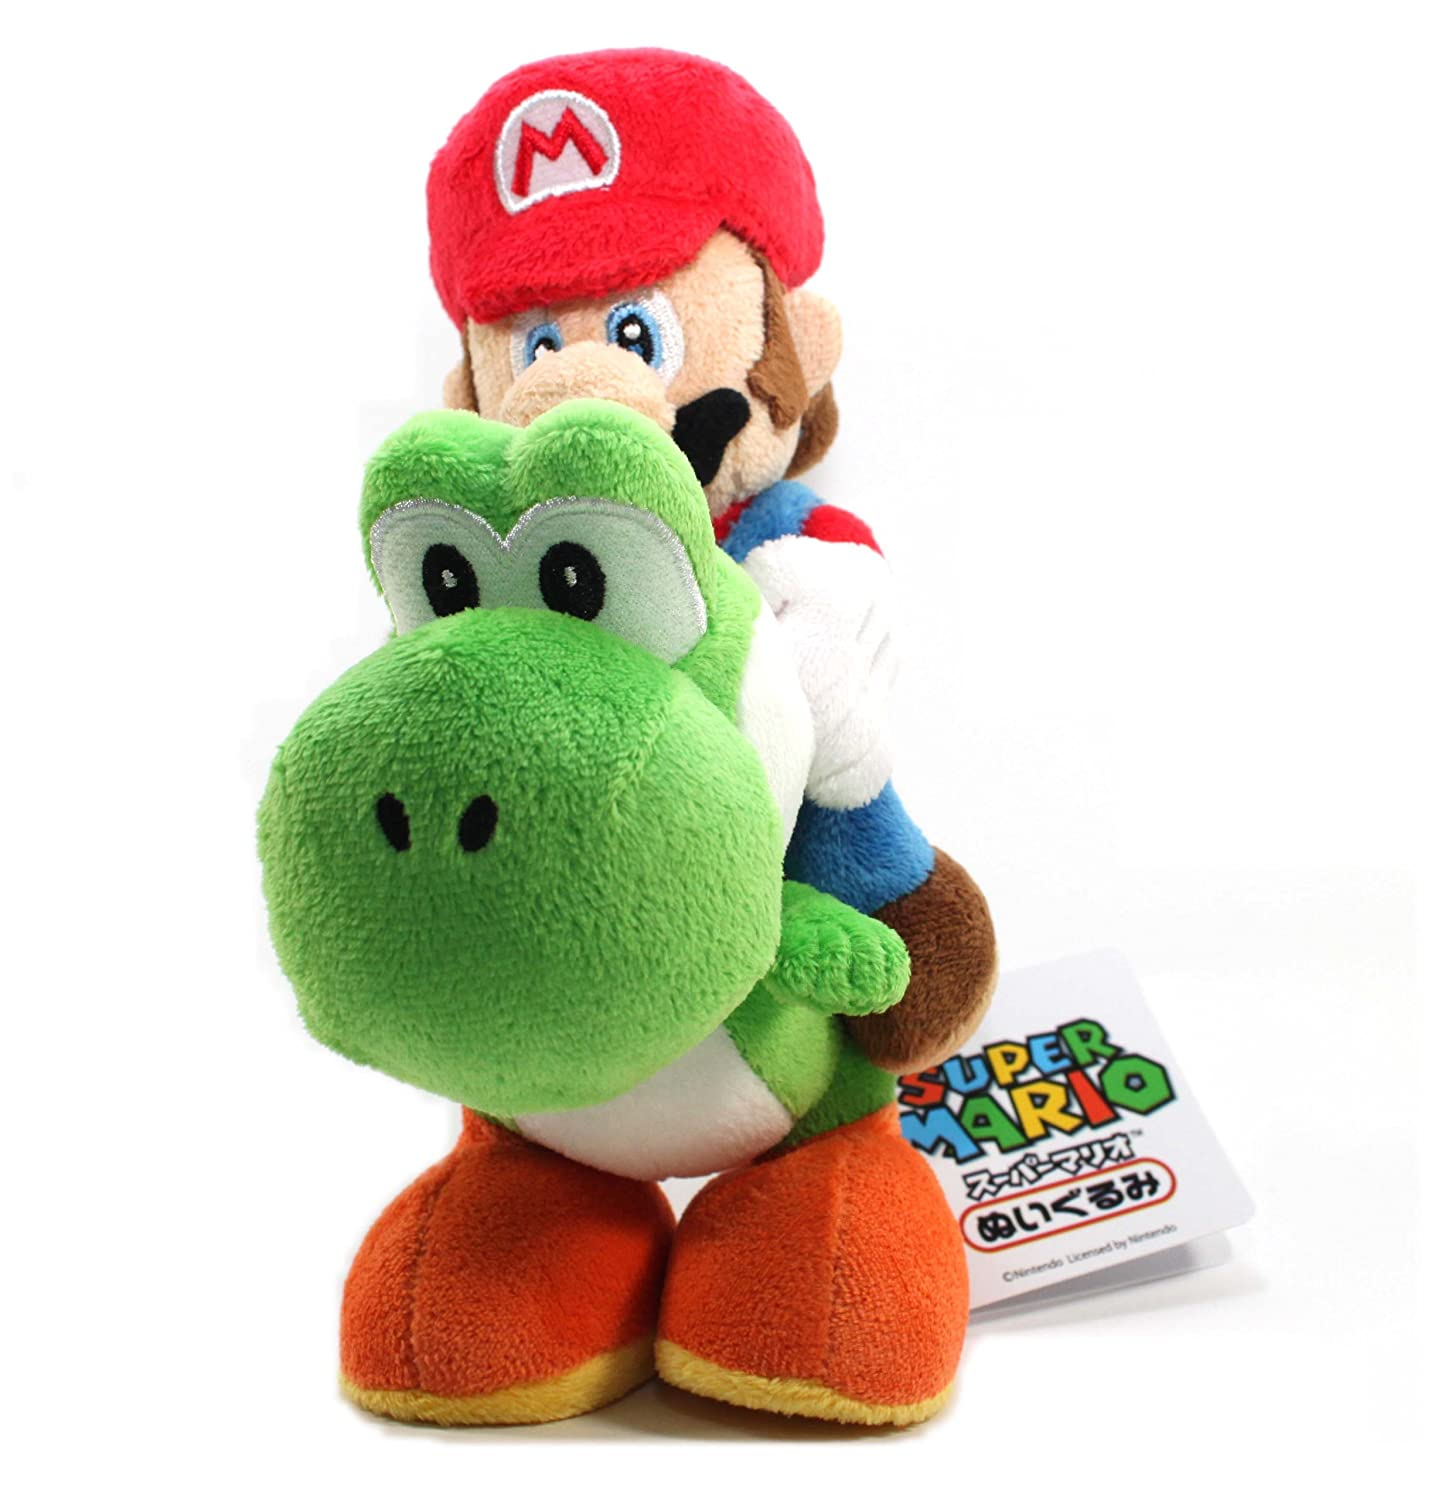 Amazon.com: Sanei Super Mario Plush Series Plush Doll: 8